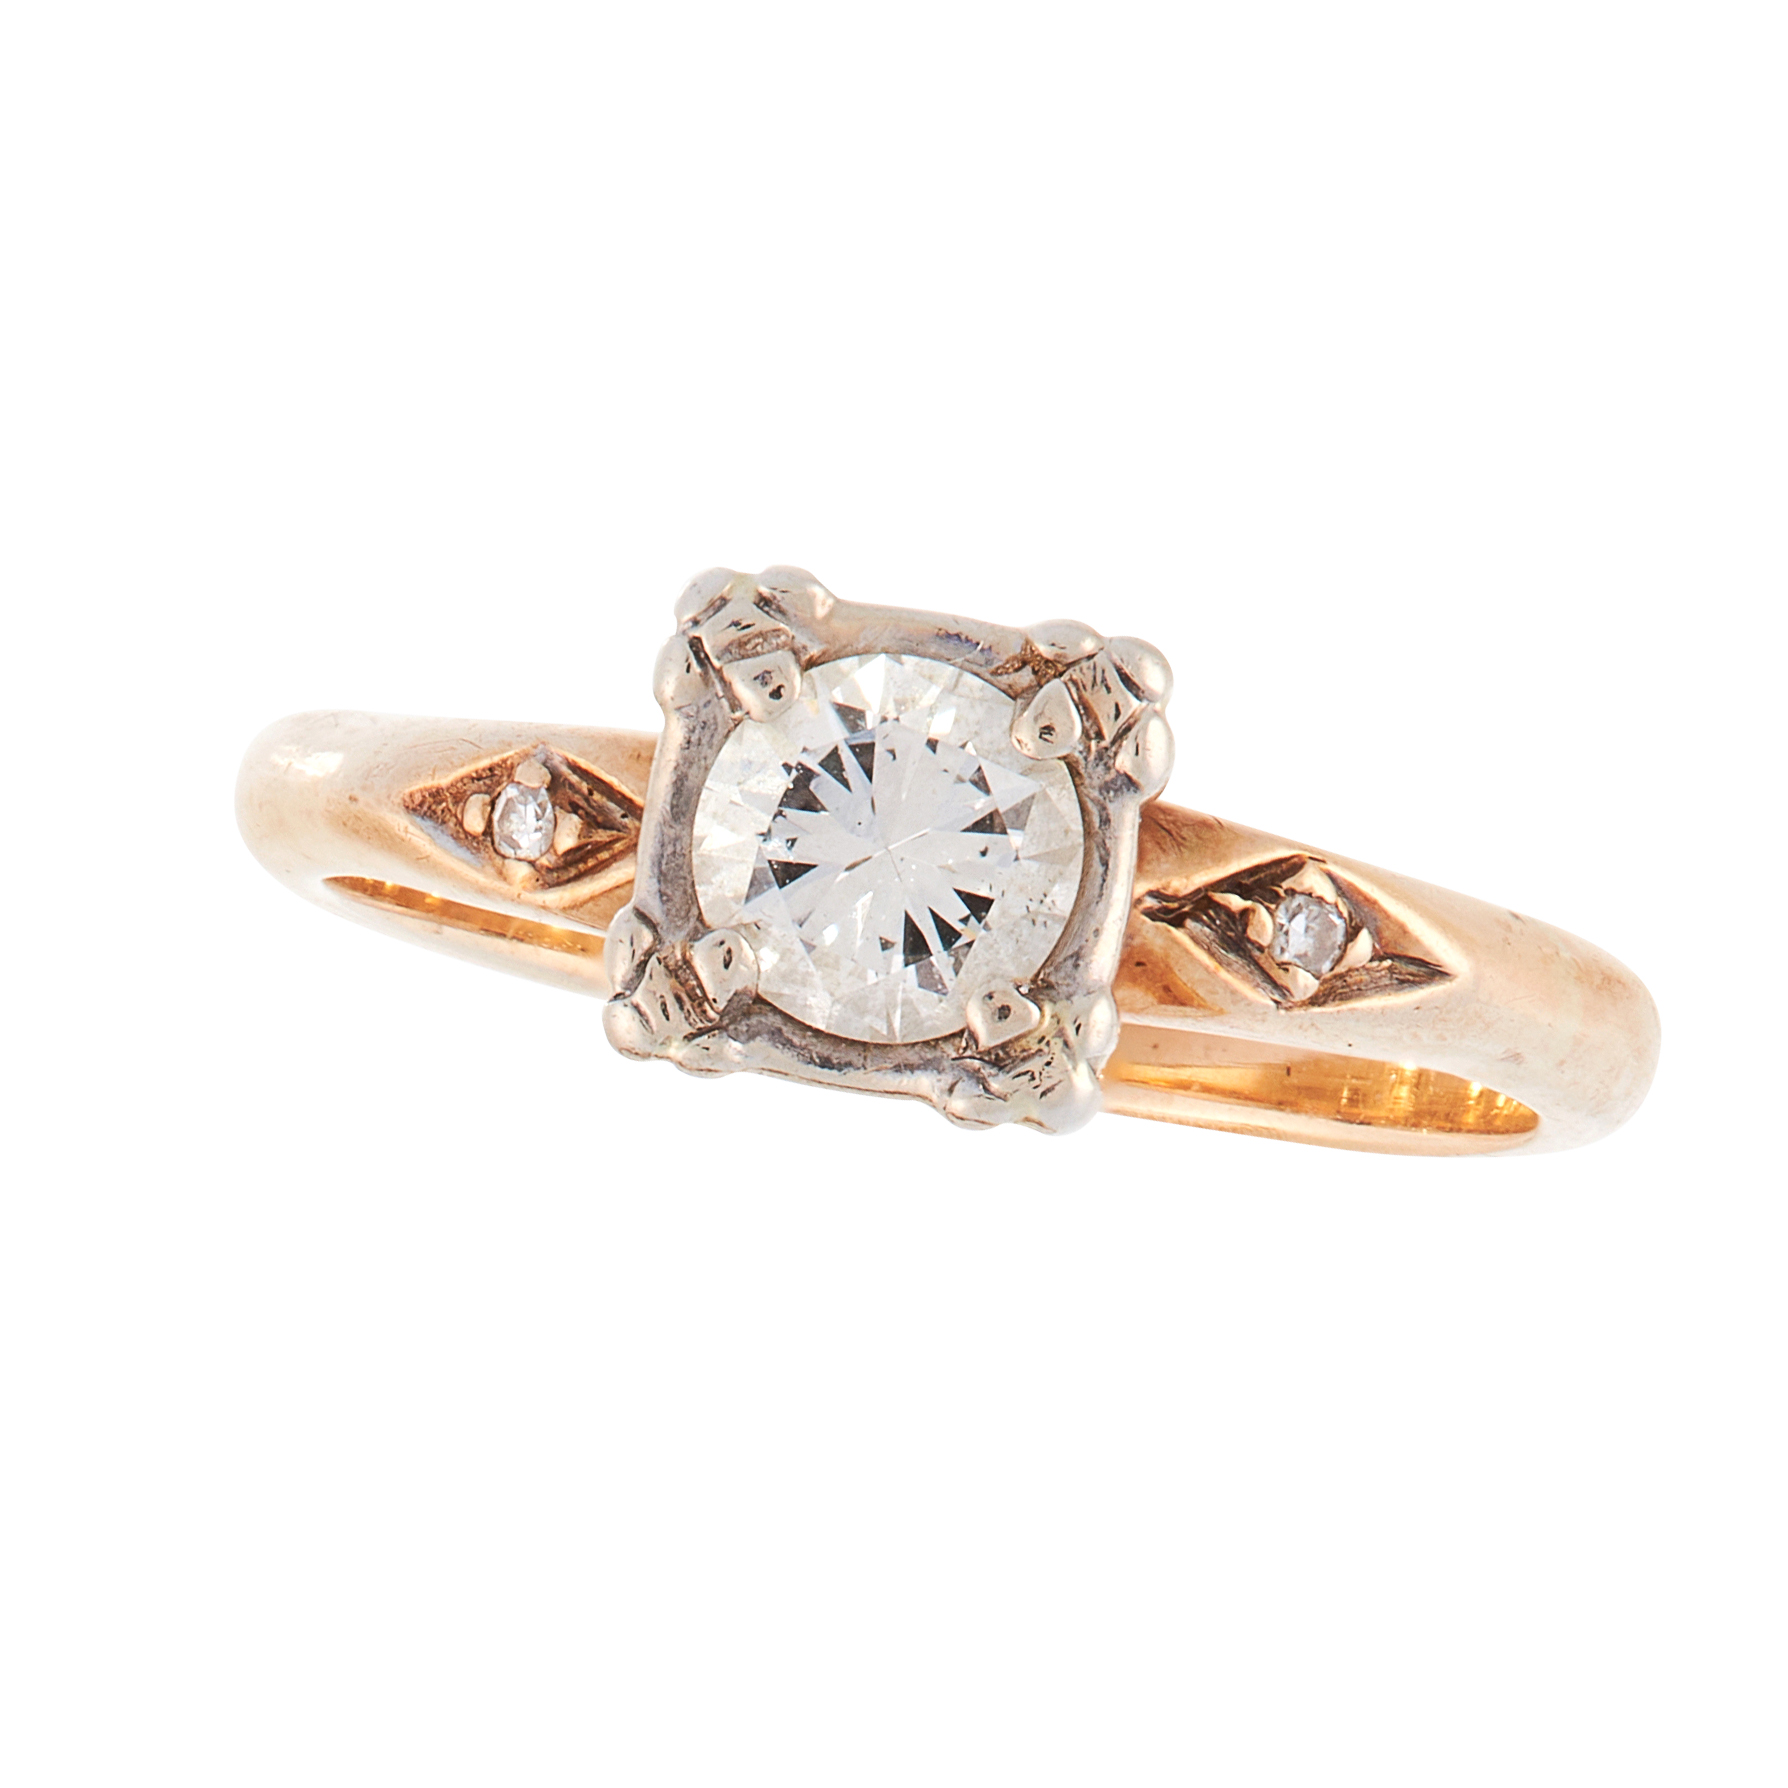 A SOLITAIRE DIAMOND DRESS RING in 18ct yellow gold, set with a round cut diamond of 0.40 carats,